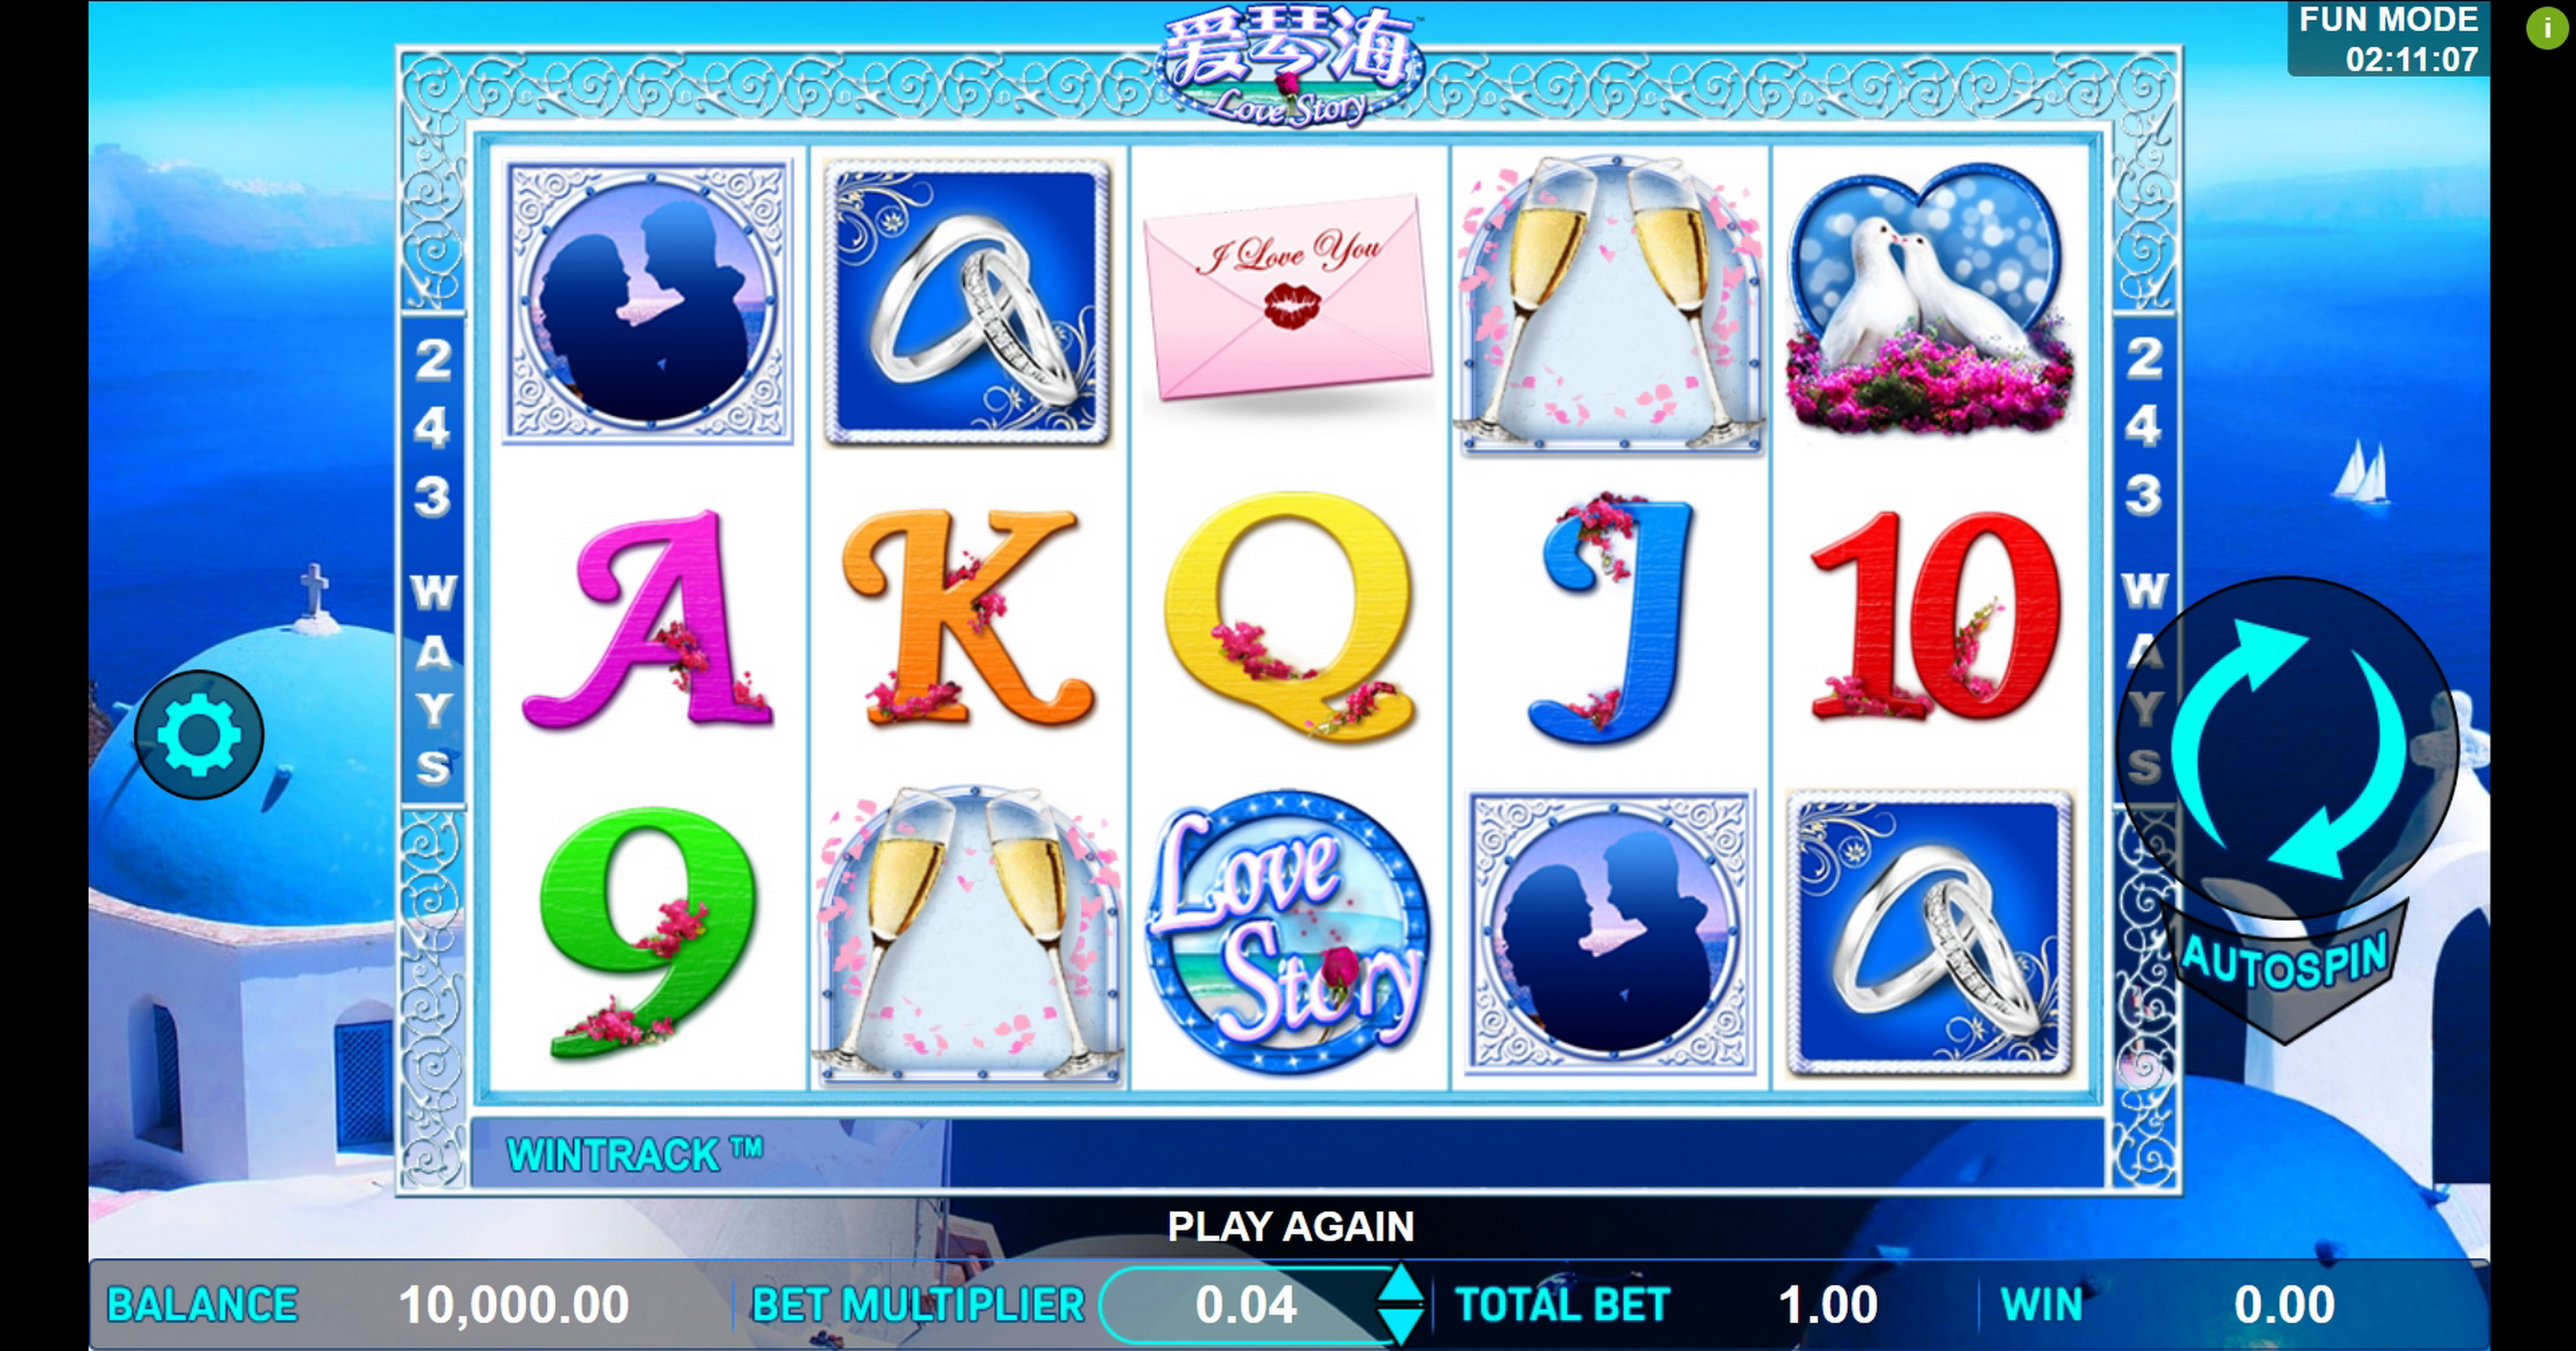 Reels in Love Story Slot Game by Aspect Gaming